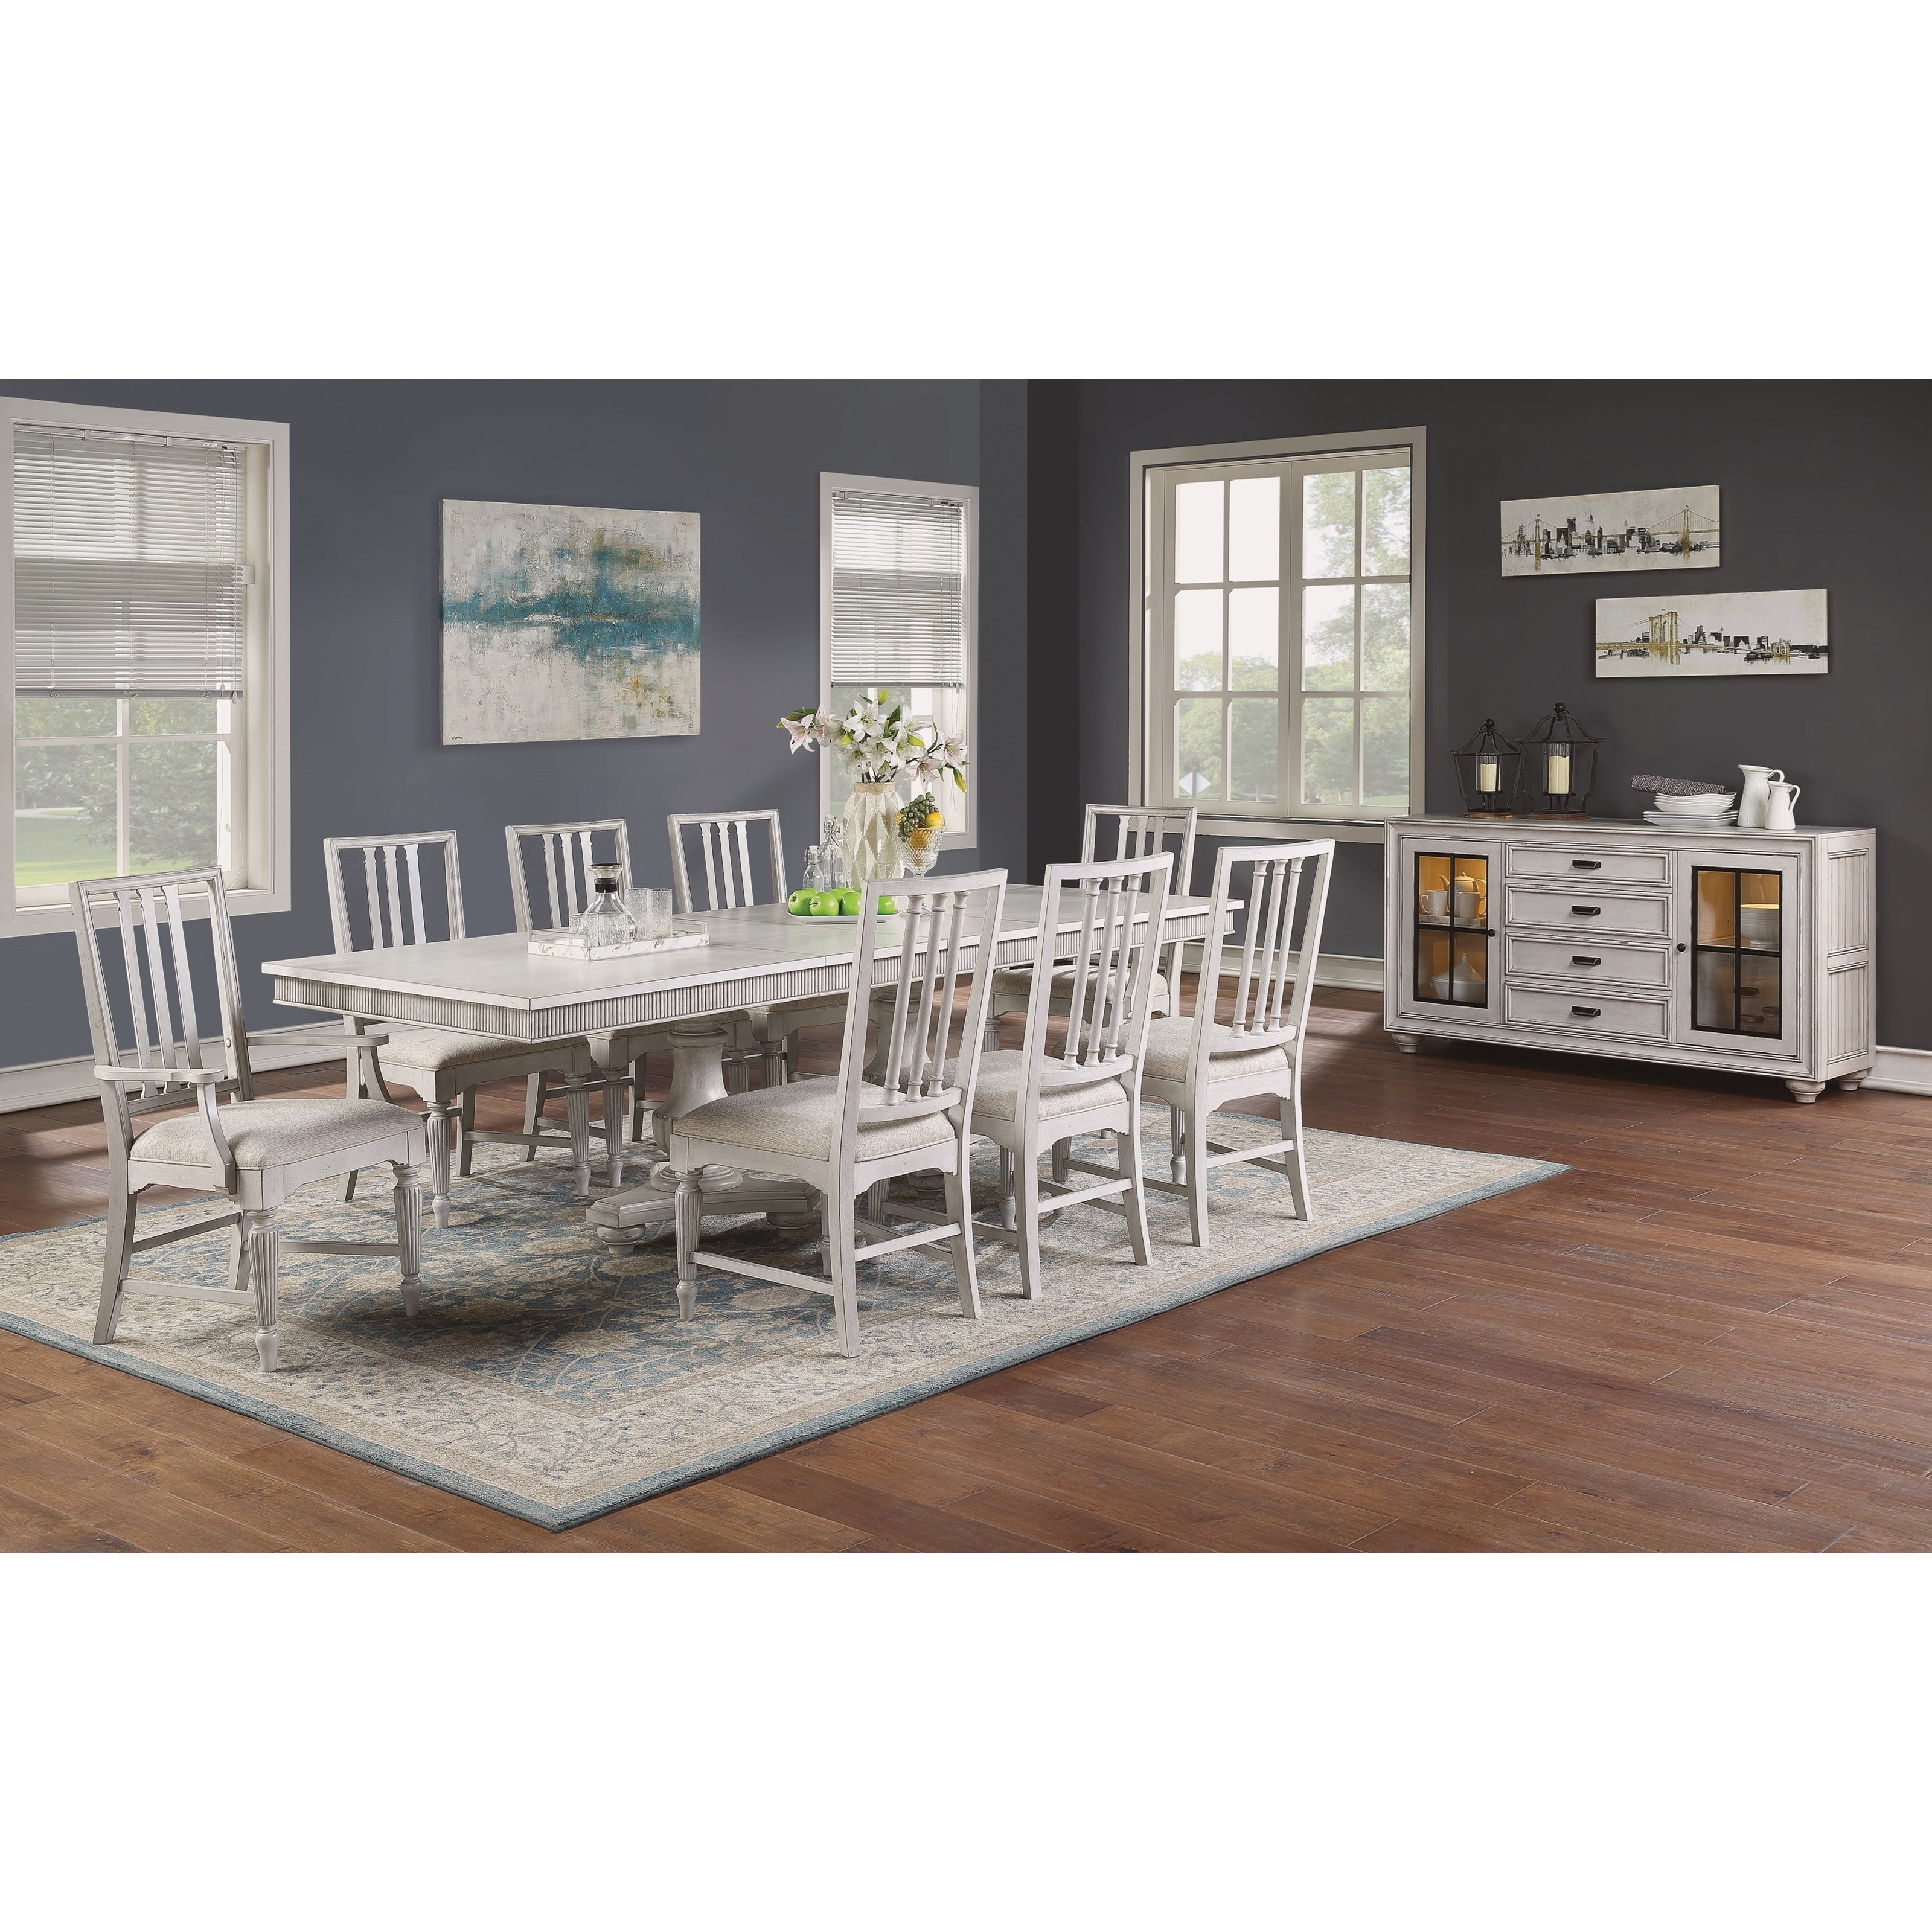 Harmony Dining Room Group by Flexsteel Wynwood Collection at Northeast Factory Direct